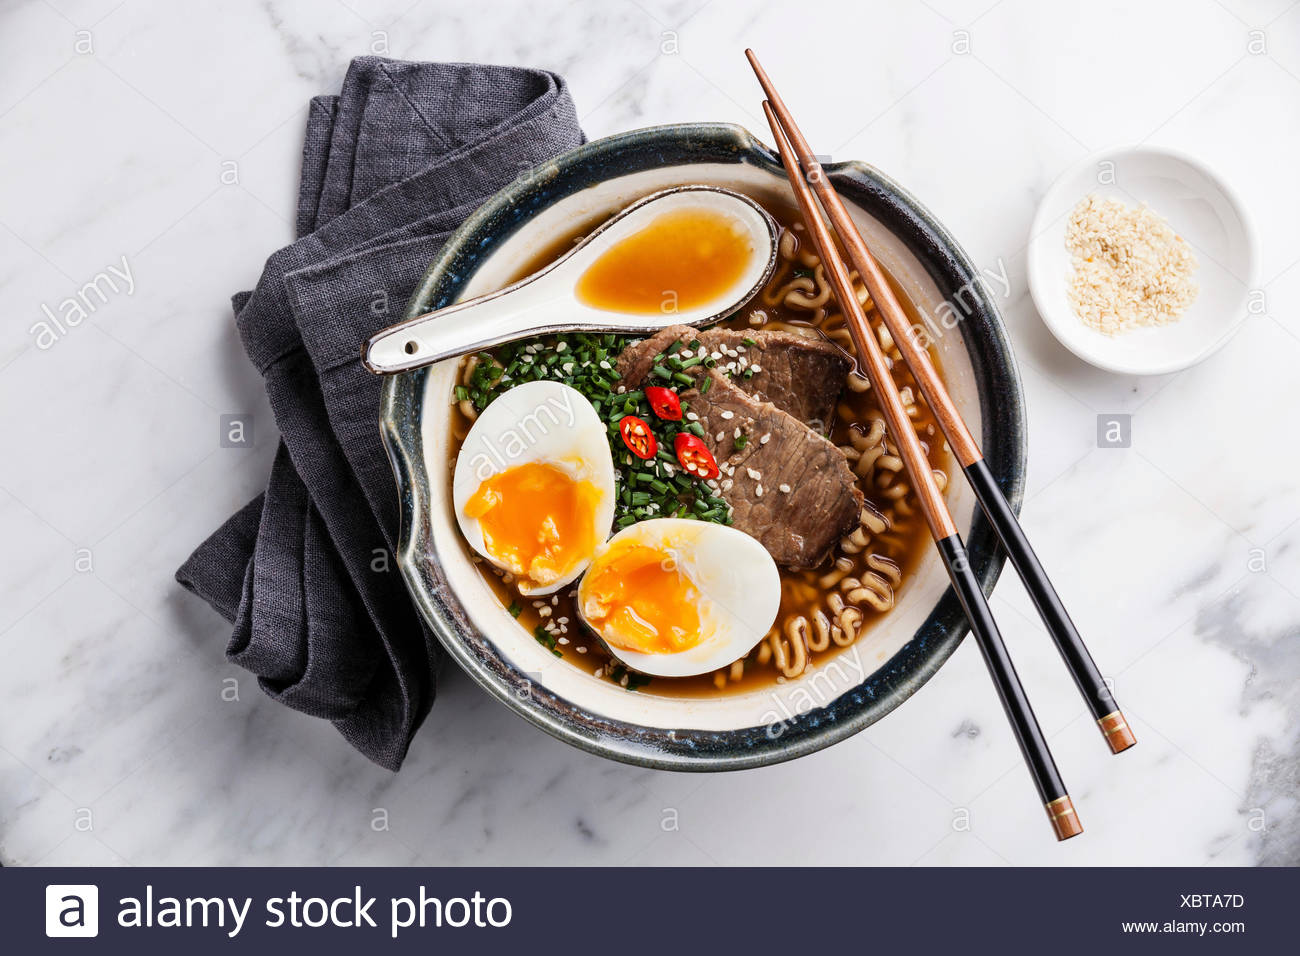 Miso Ramen Asian noodles with beef and egg in bowl on white marble background - Stock Image